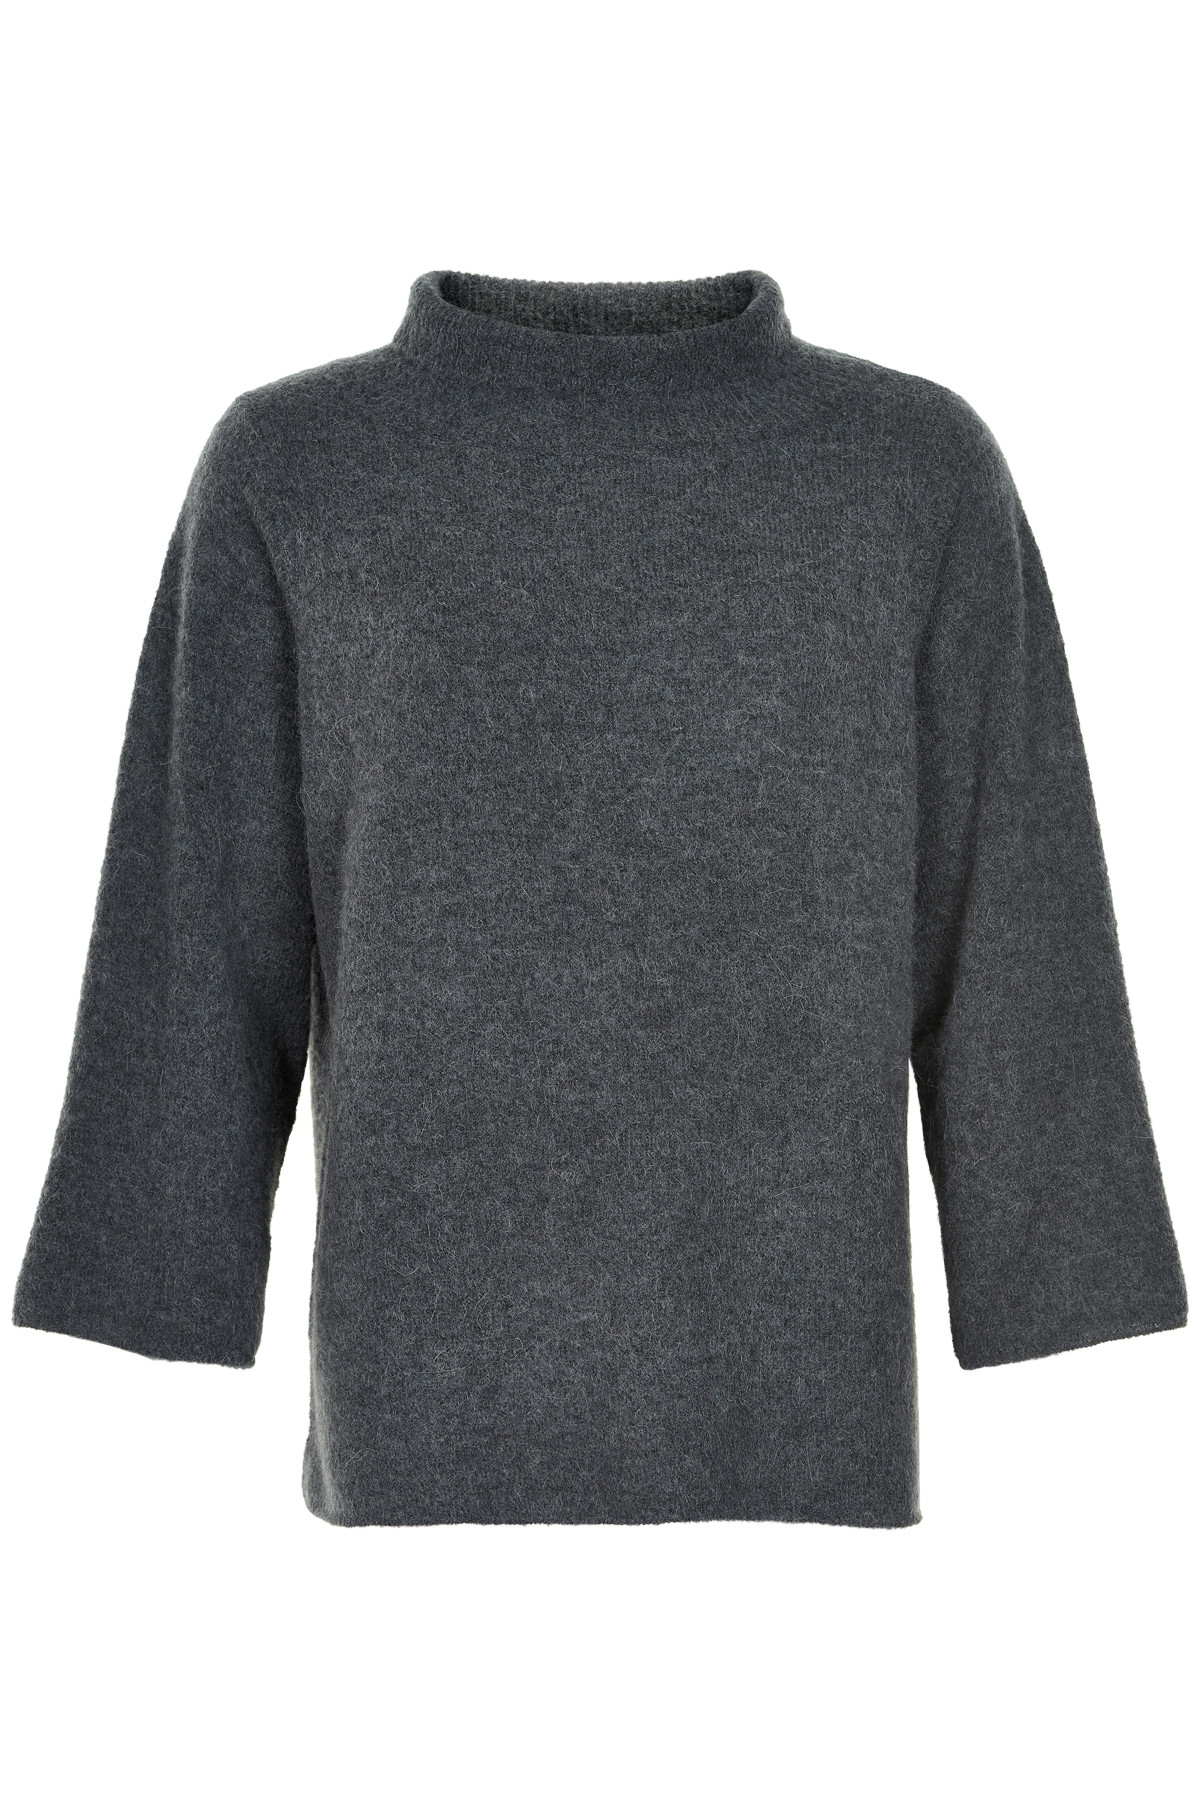 Image of   AND LESS ALELENORE PULLOVER 5519204 (Folkstone, XS)